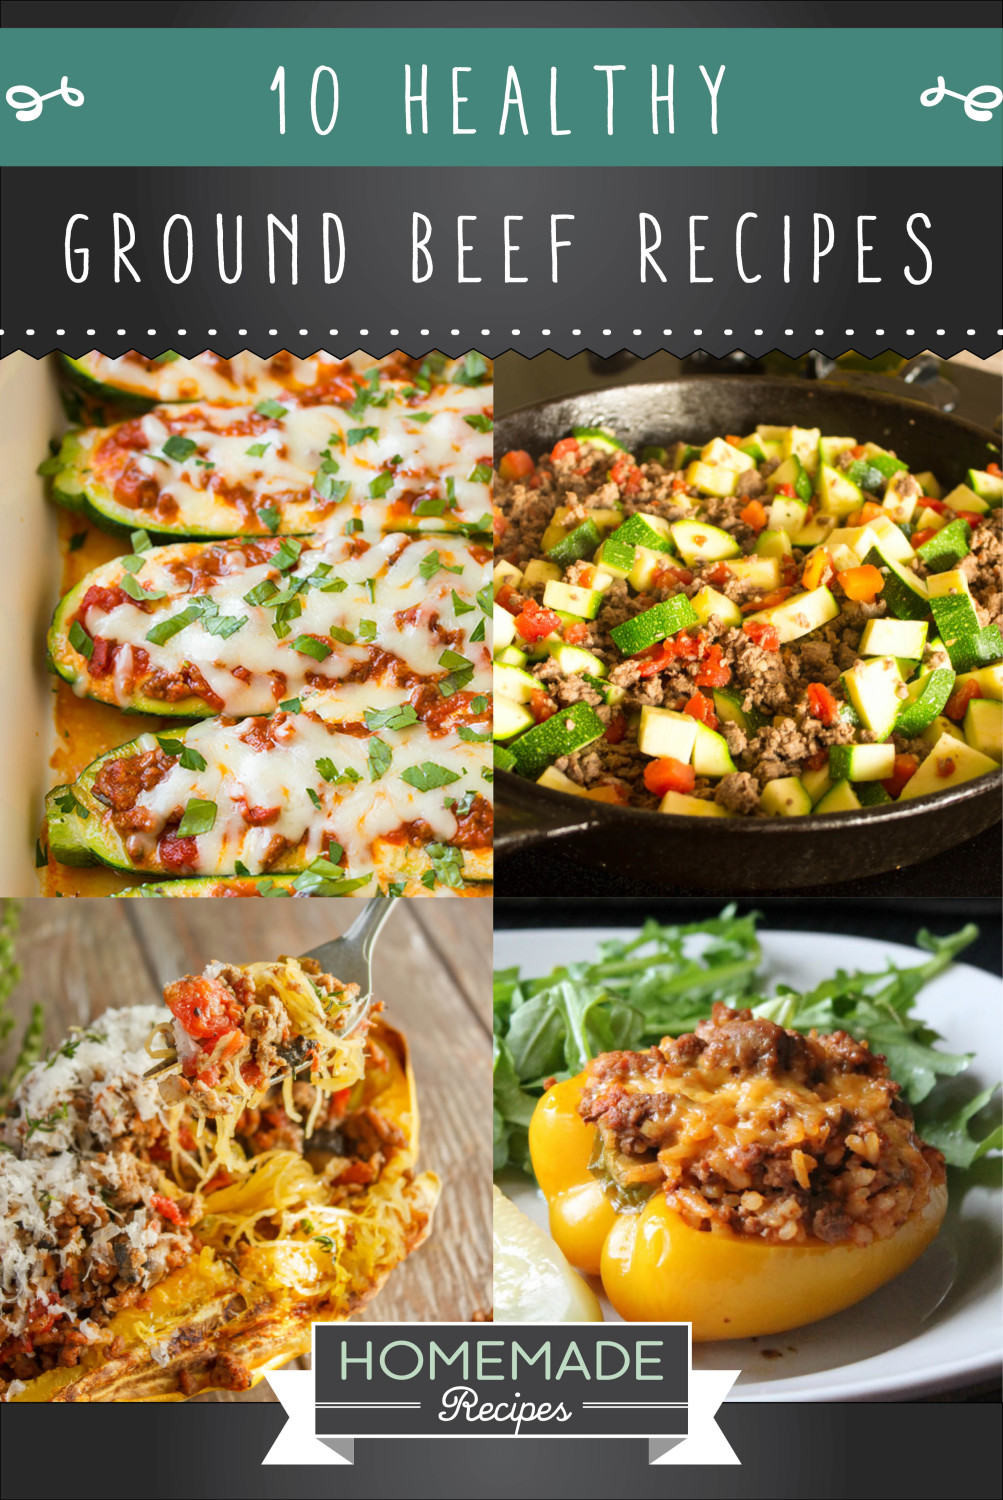 Healthy Recipe With Ground Beef  10 Healthy Ground Beef Recipes